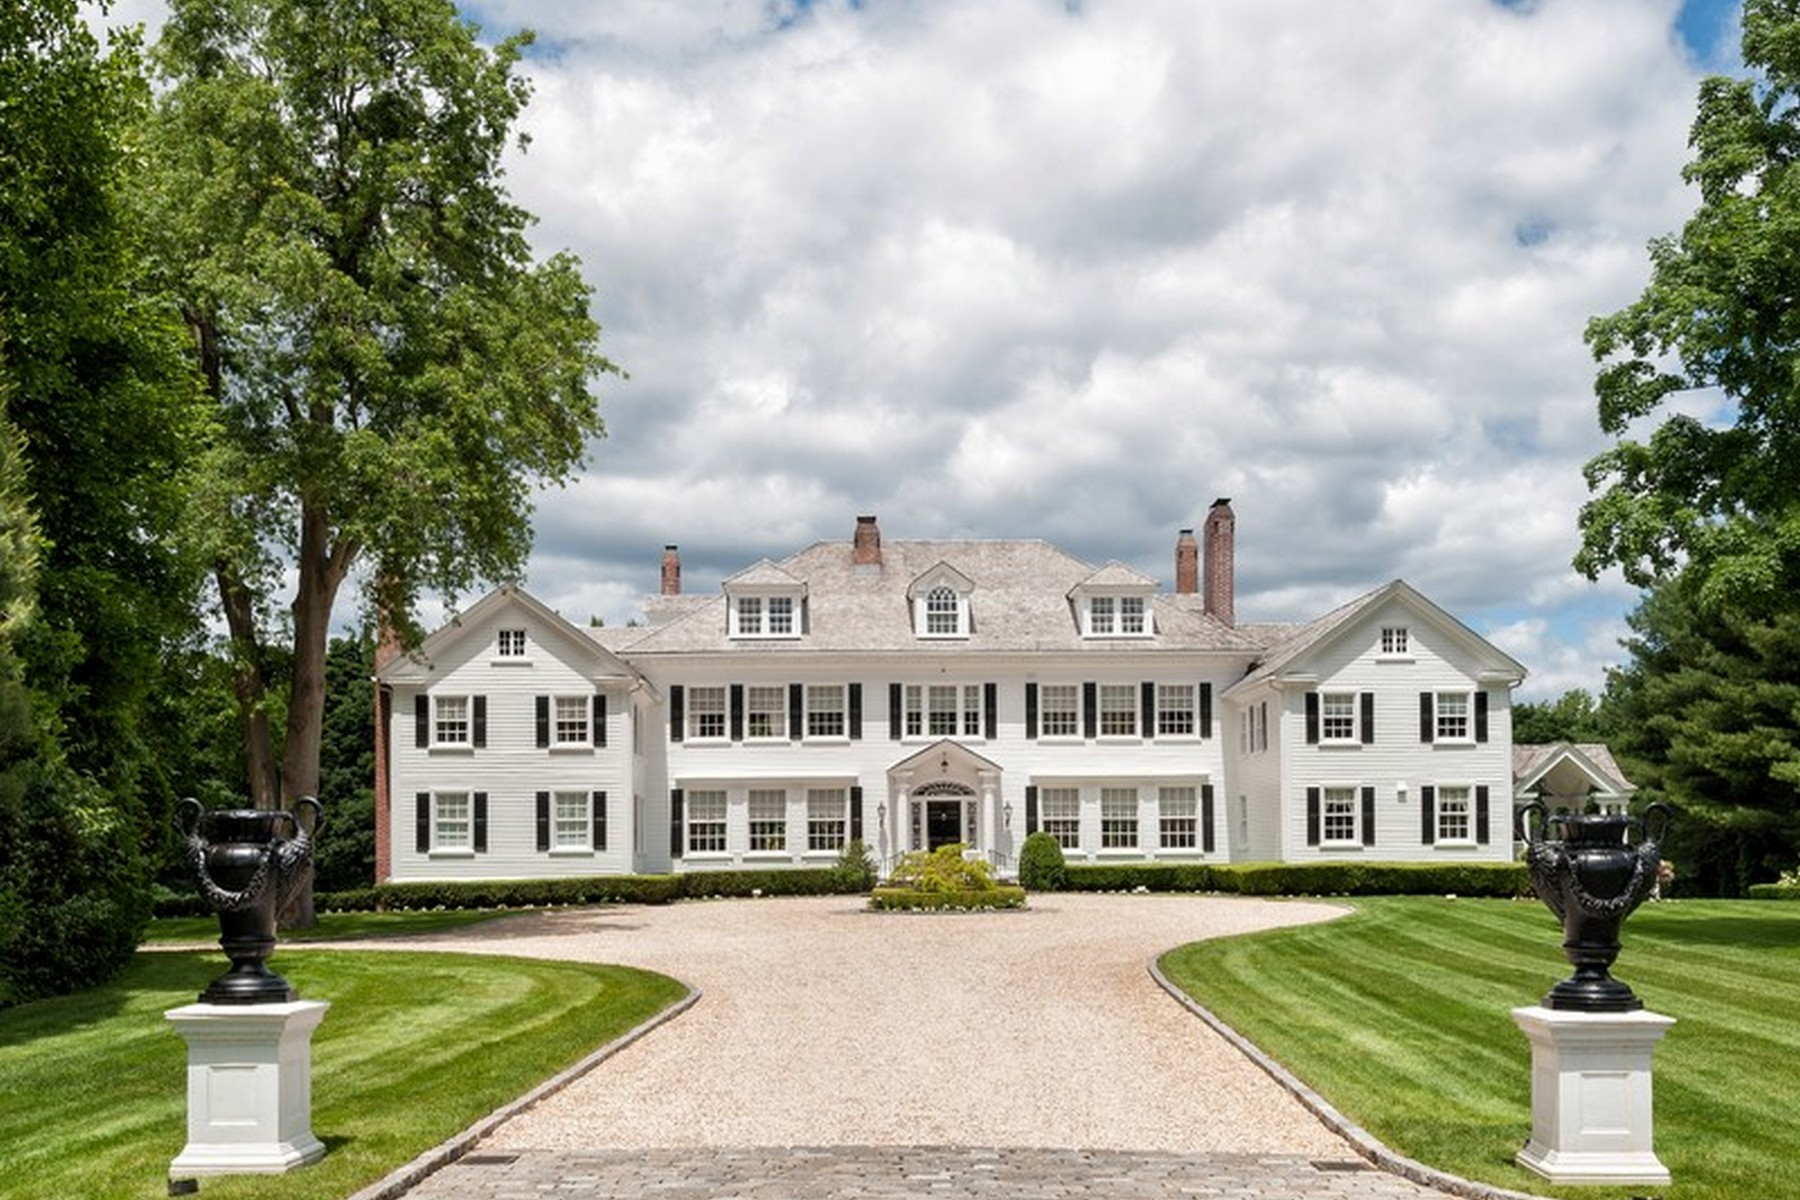 Villa per Vendita alle ore Colonial 199 Feeks Ln Lattingtown, New York, 11560 Stati Uniti